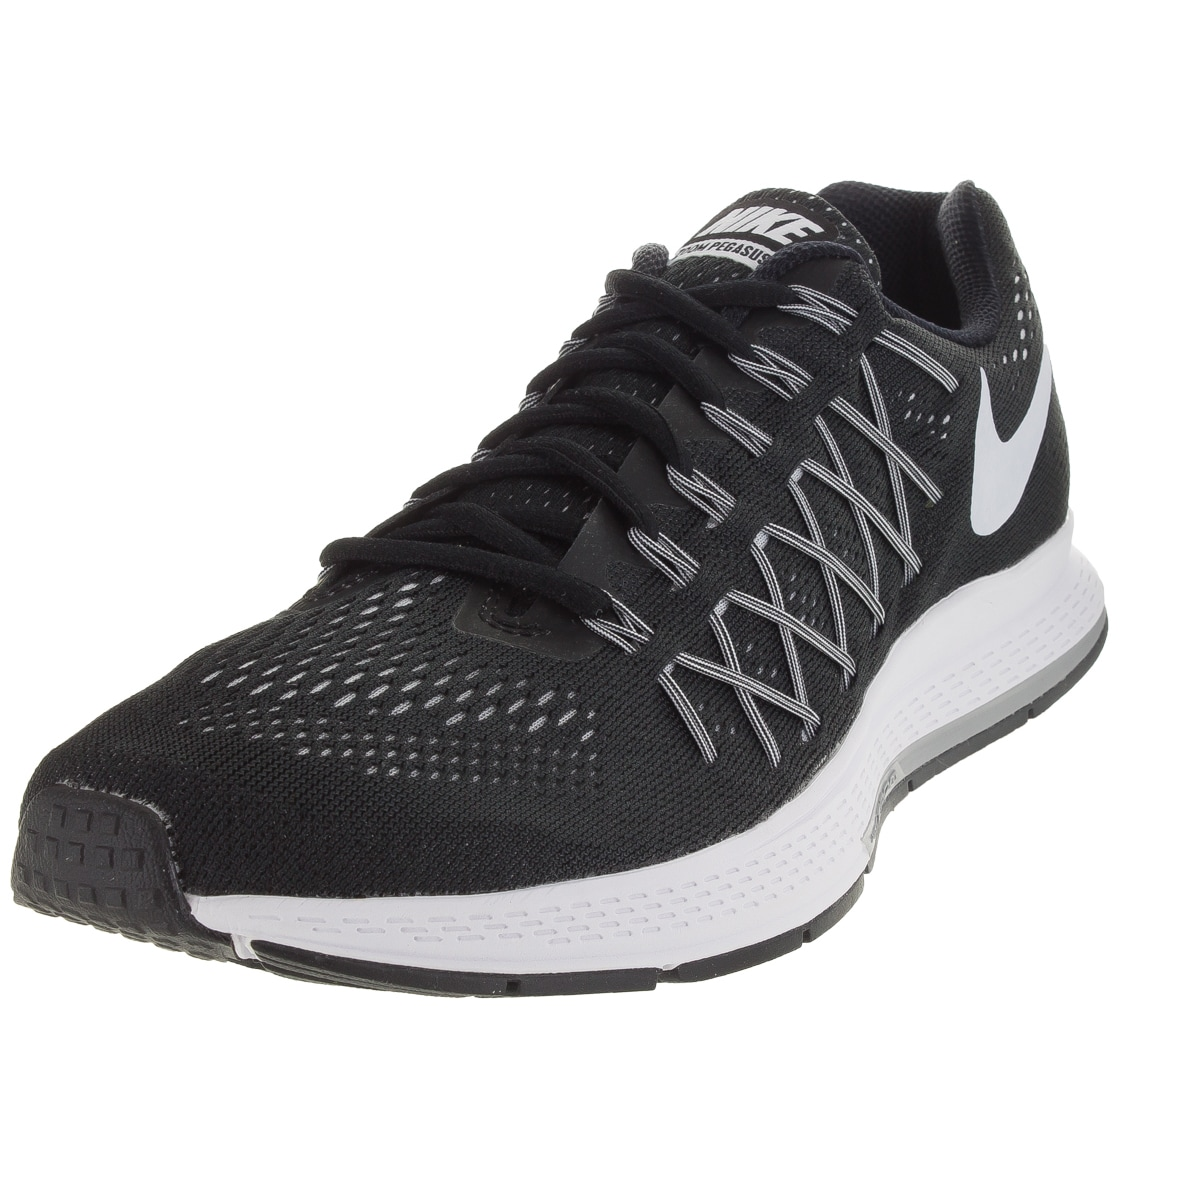 more photos 8076f 8aeee Nike Men s Air Zoom Pegasus 32 Black White Pure Platinum Running Shoe